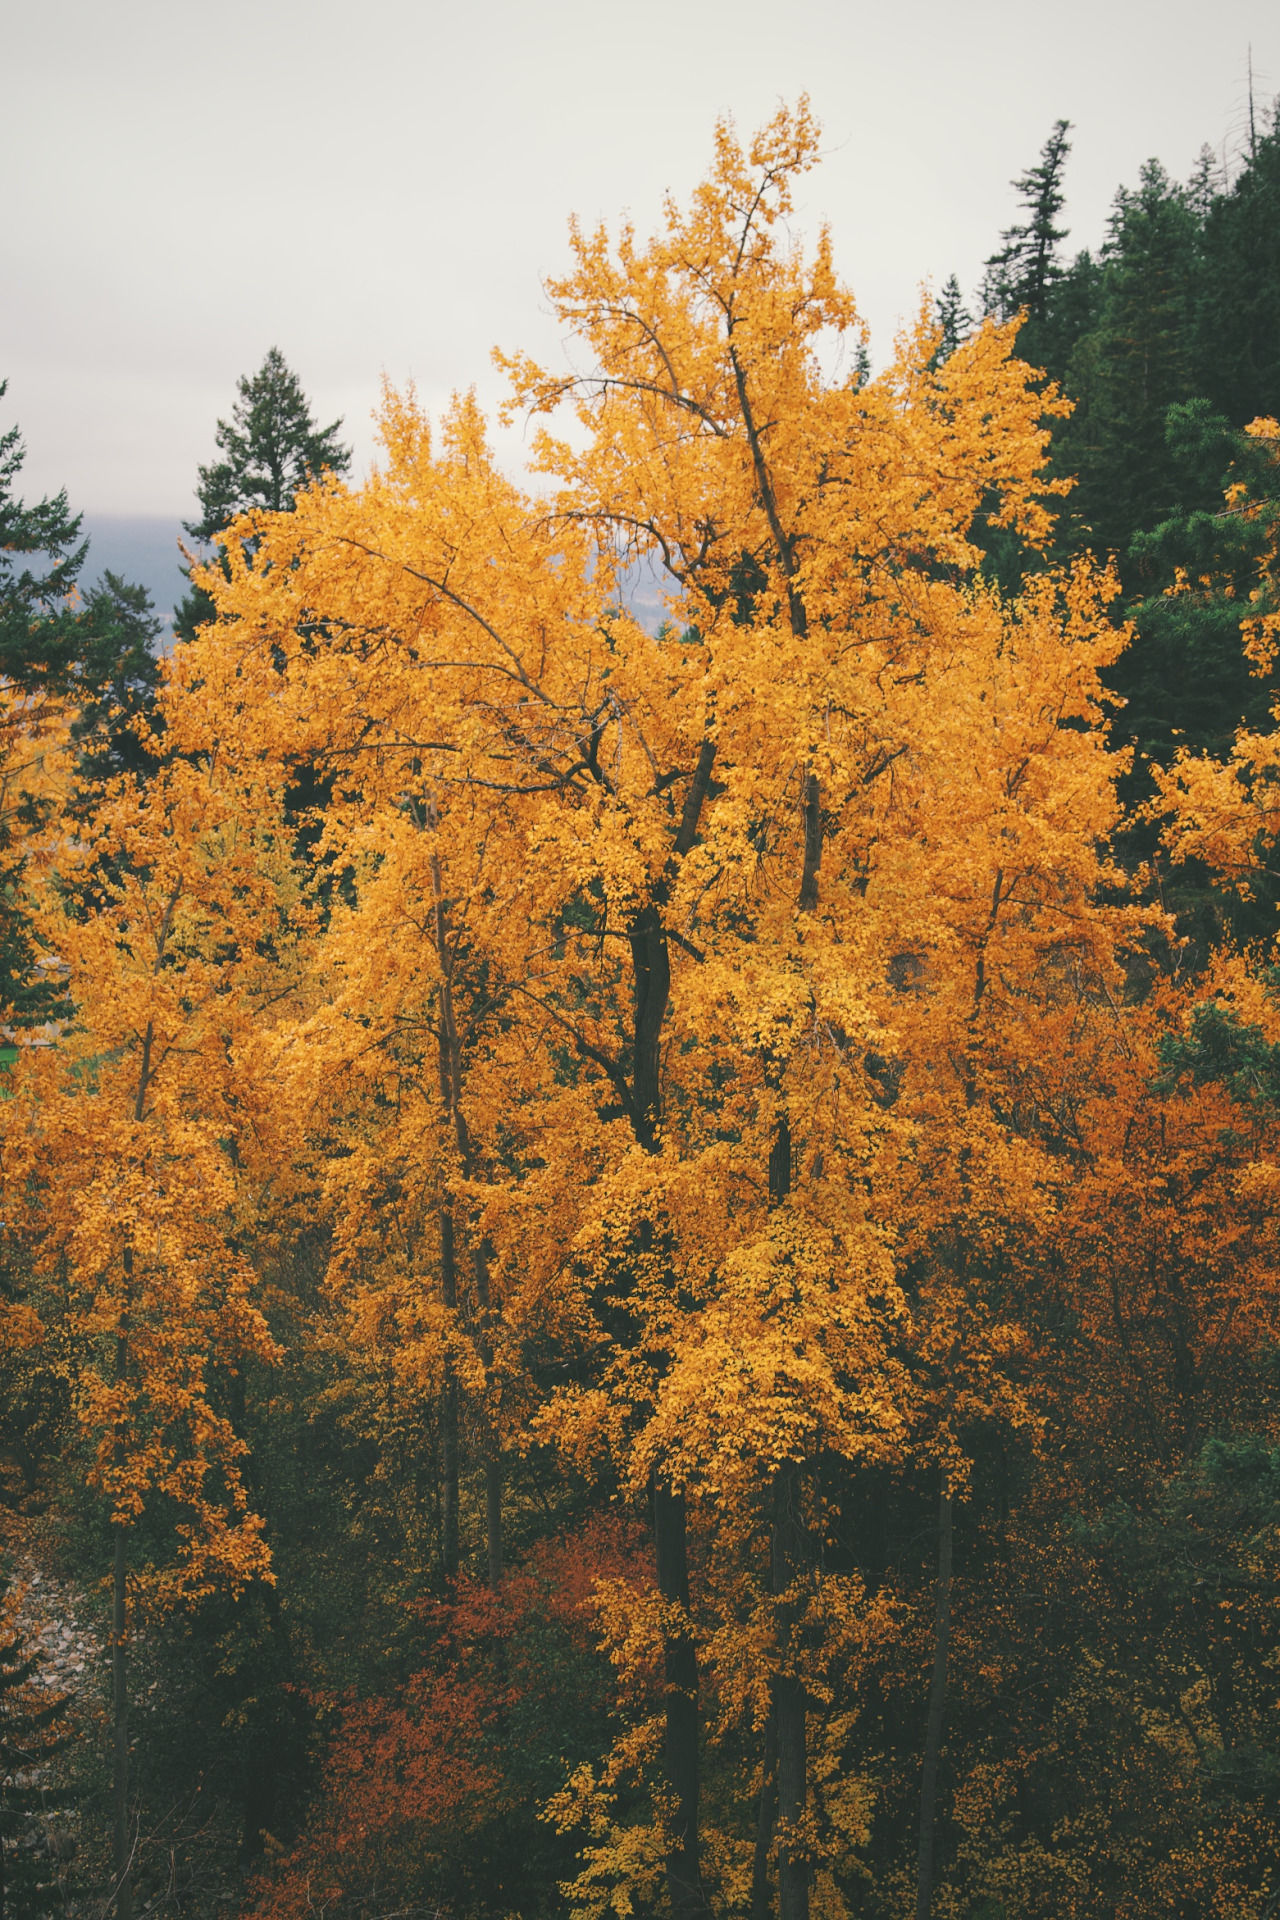 Orange Autumn Tree Pictures, Photos, and Images for